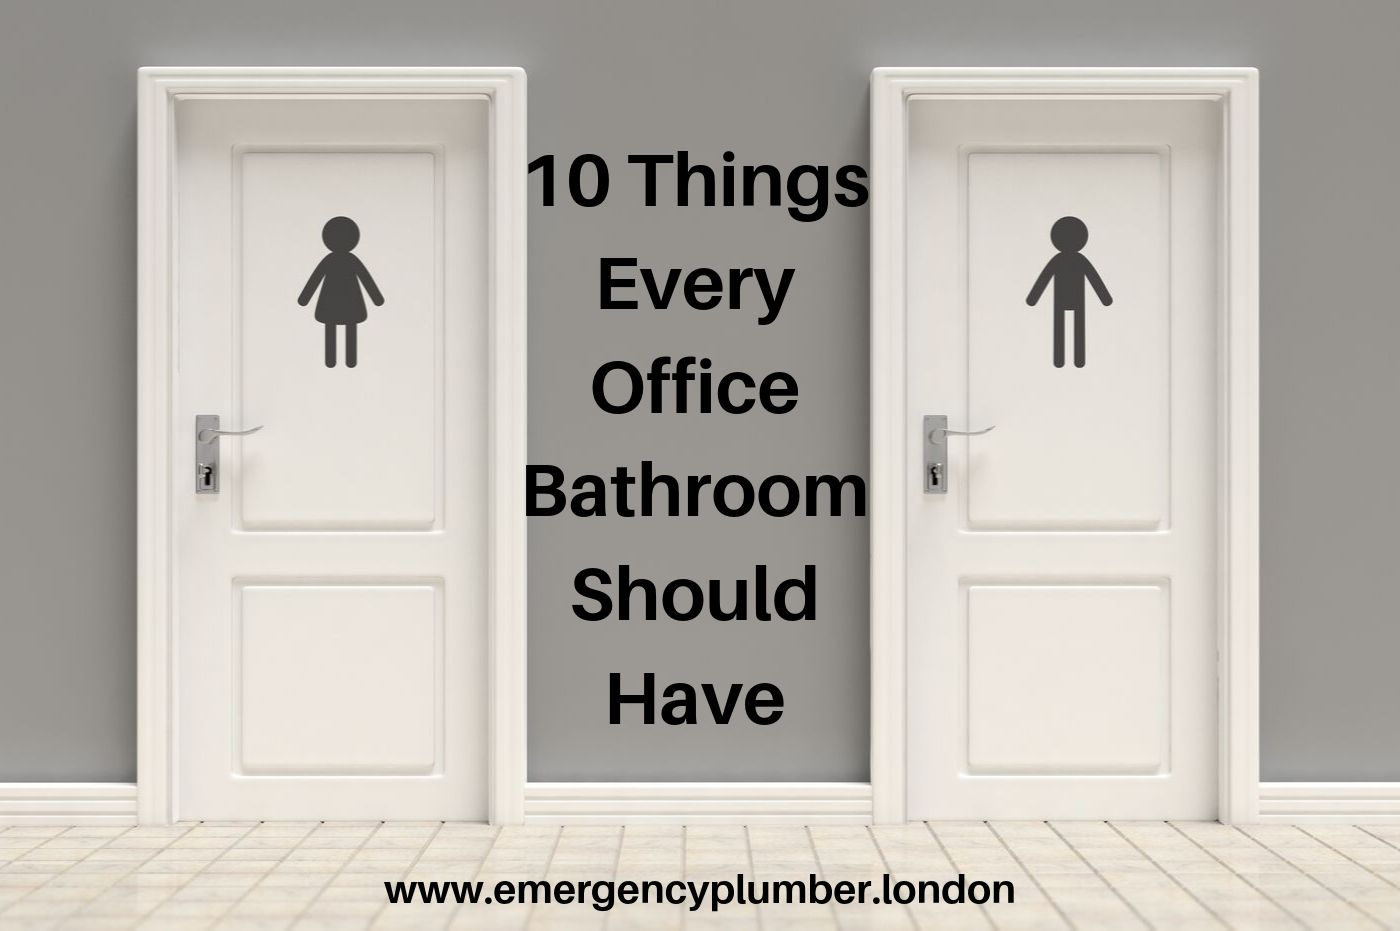 10 Things Every Office Bathroom Should Have